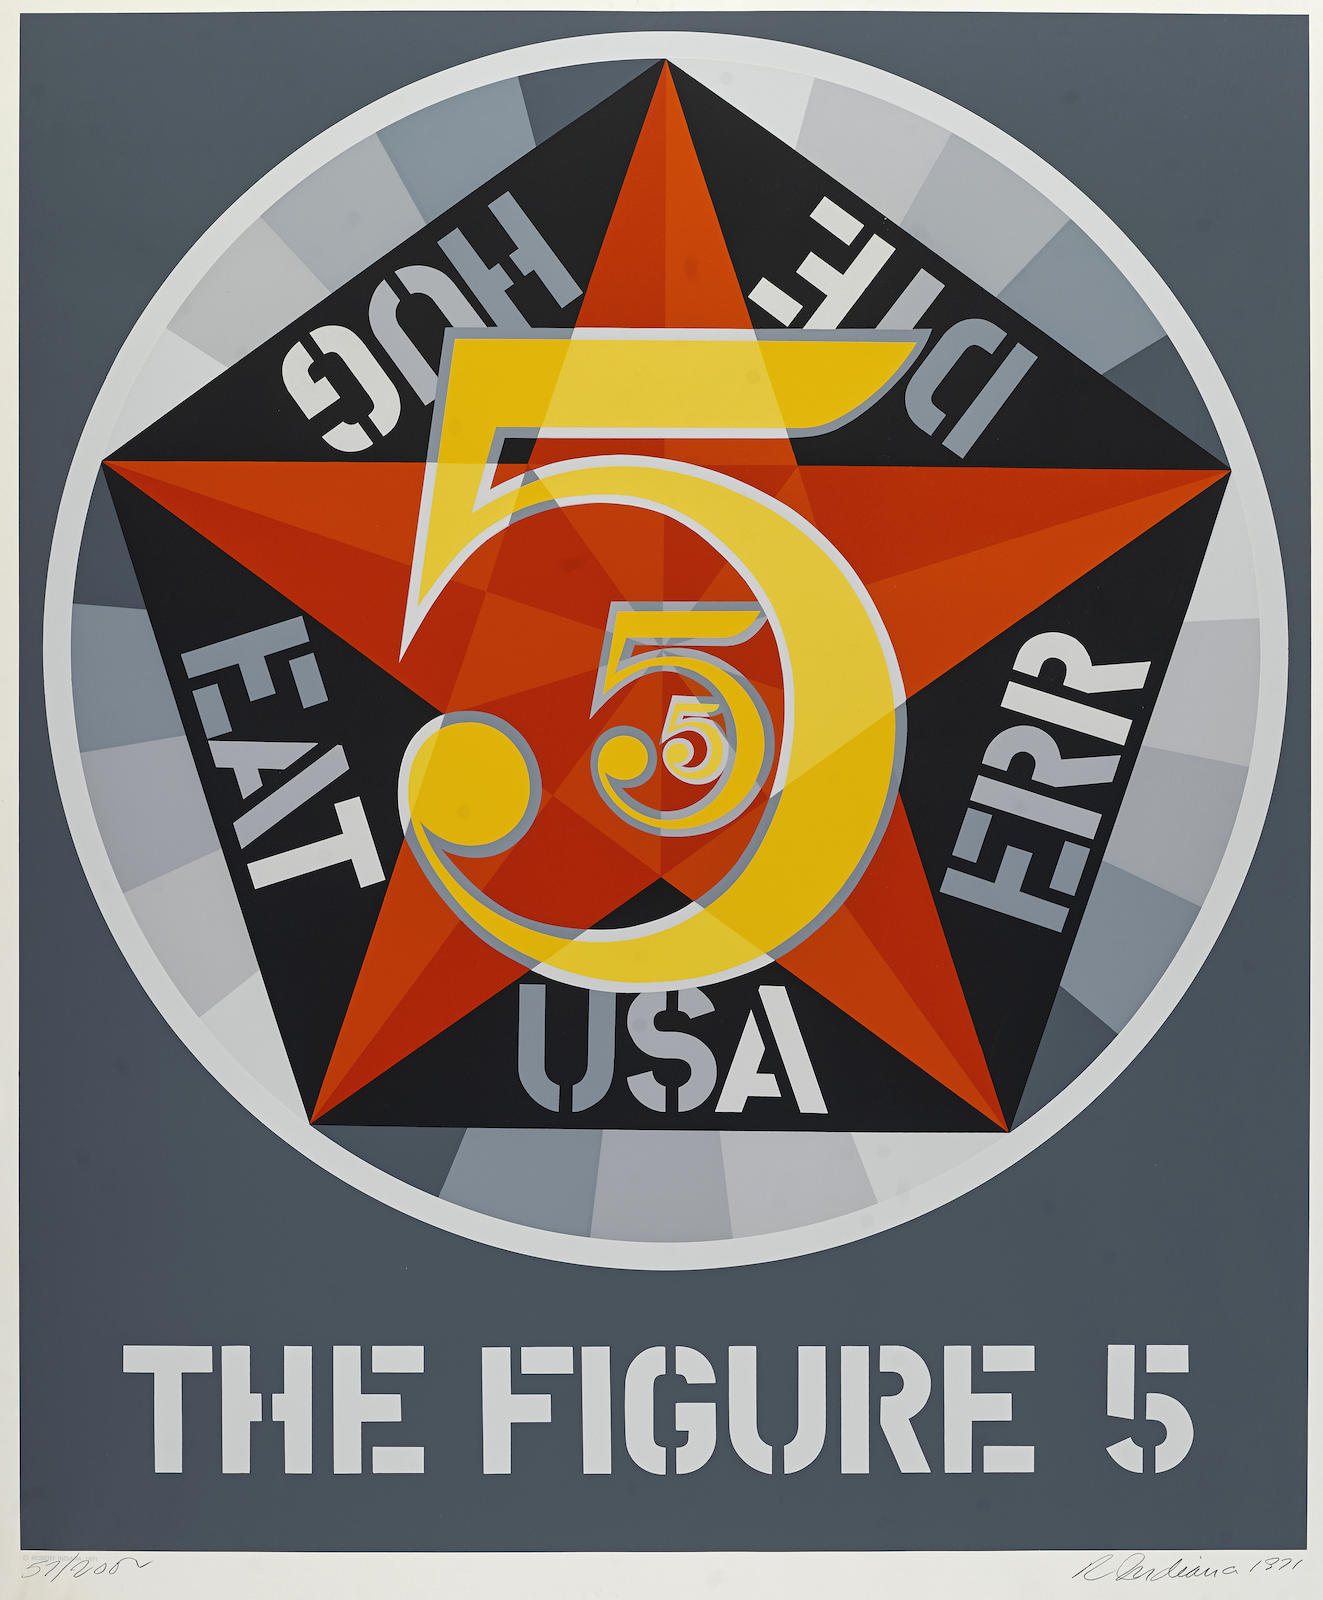 Robert Indiana-Eight Plates, from Decade Series (S. 63-67, 69, 70, 72). Titles include: American Dream (S. 63); Calumet (S. 64); Yield Brother (S. 65); Figure 5 (S. 66); Brooklyn Bridge (S. 67); USA 666 (S. 69); Parrot (S. 70); Terre Haute no. 2 (S. 72)-1971